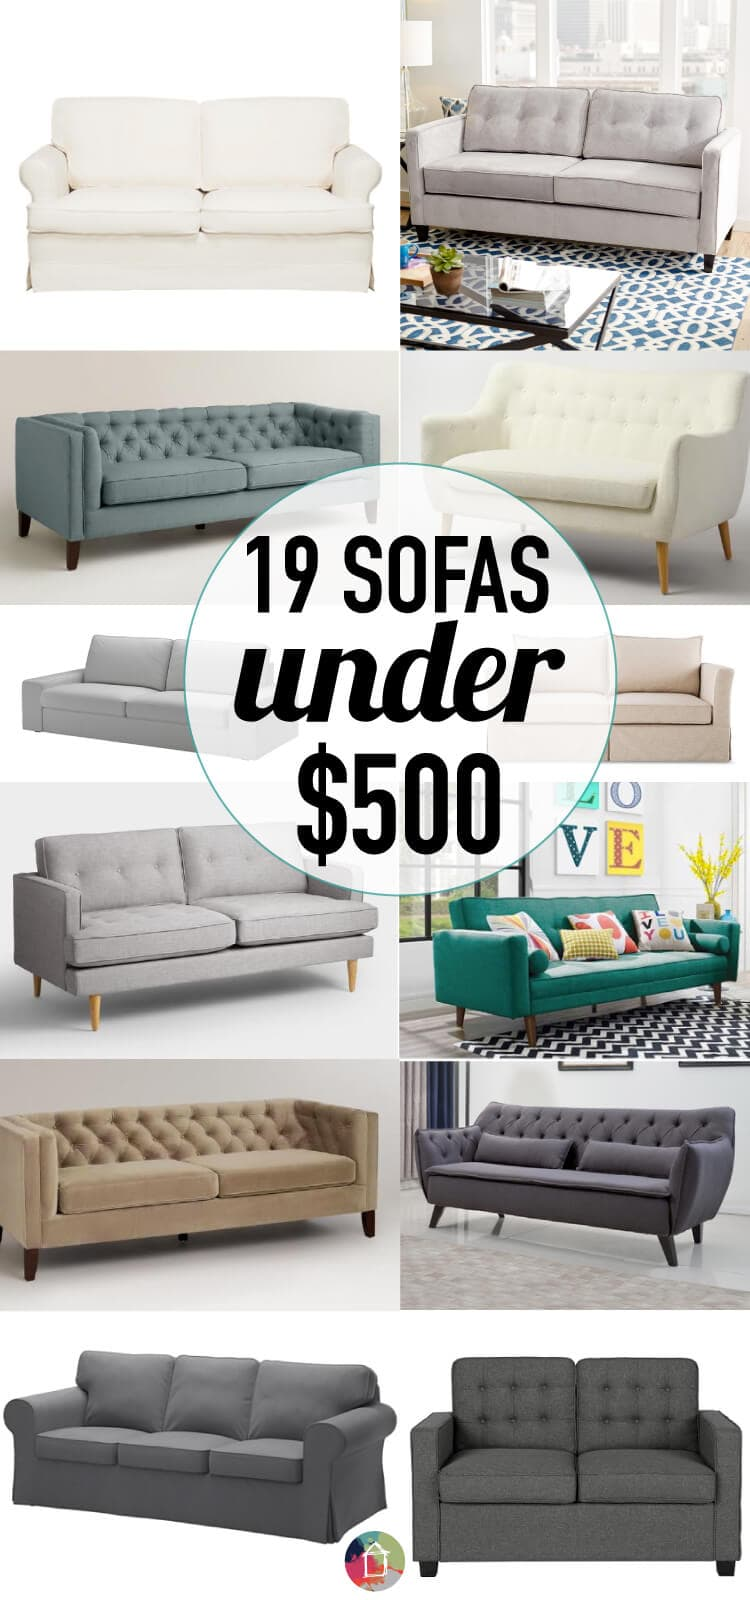 Amazing Sofa Deals Are Out There These Affordable Sofas Super Stylish At Great Prices